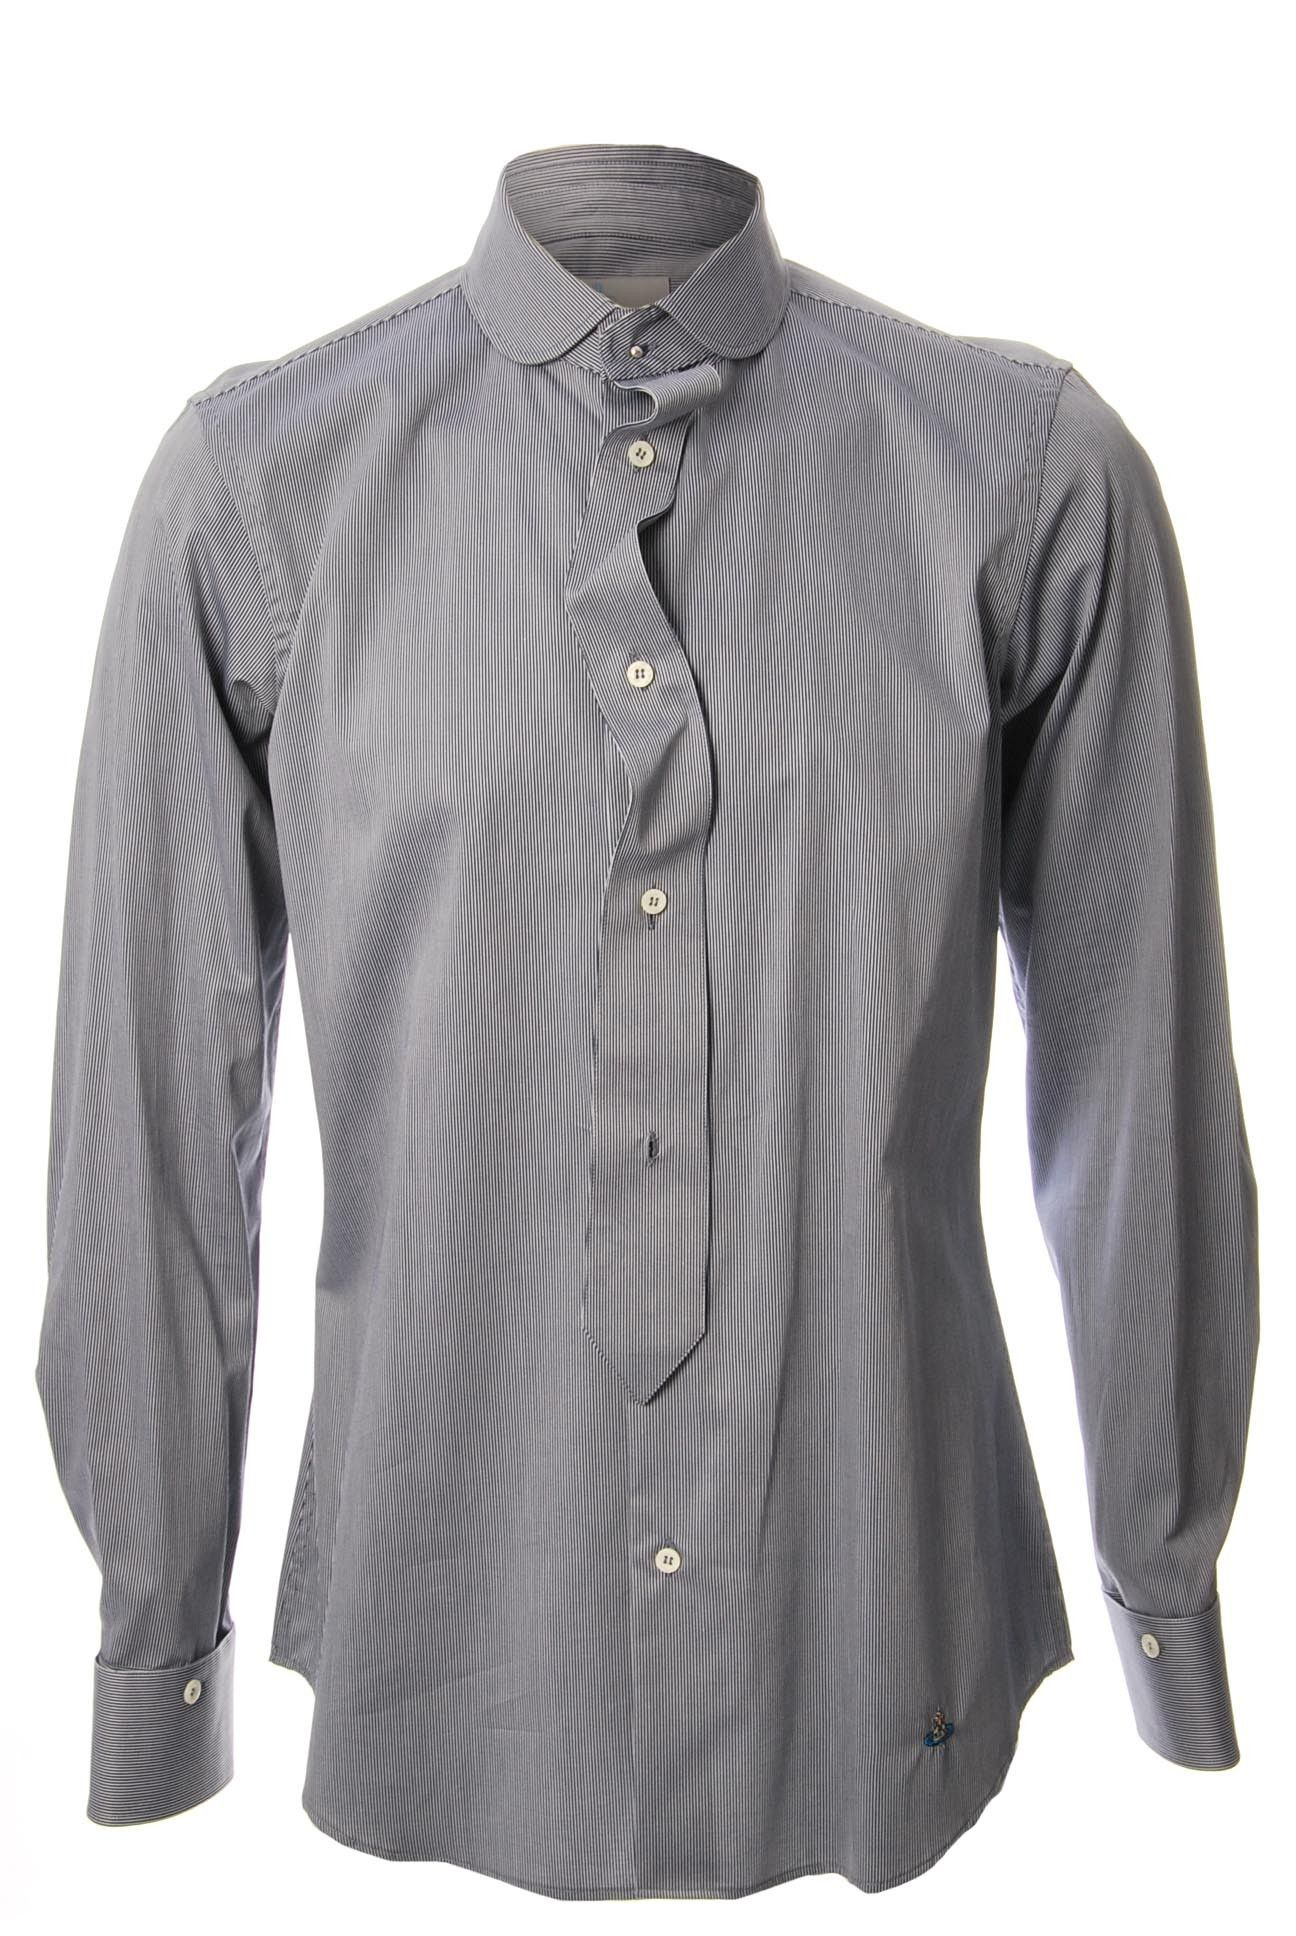 9fe6faaa Vivienne Westwood Shirt with Detachable Collar » Sale » Men's Designer  Clothing & Brands